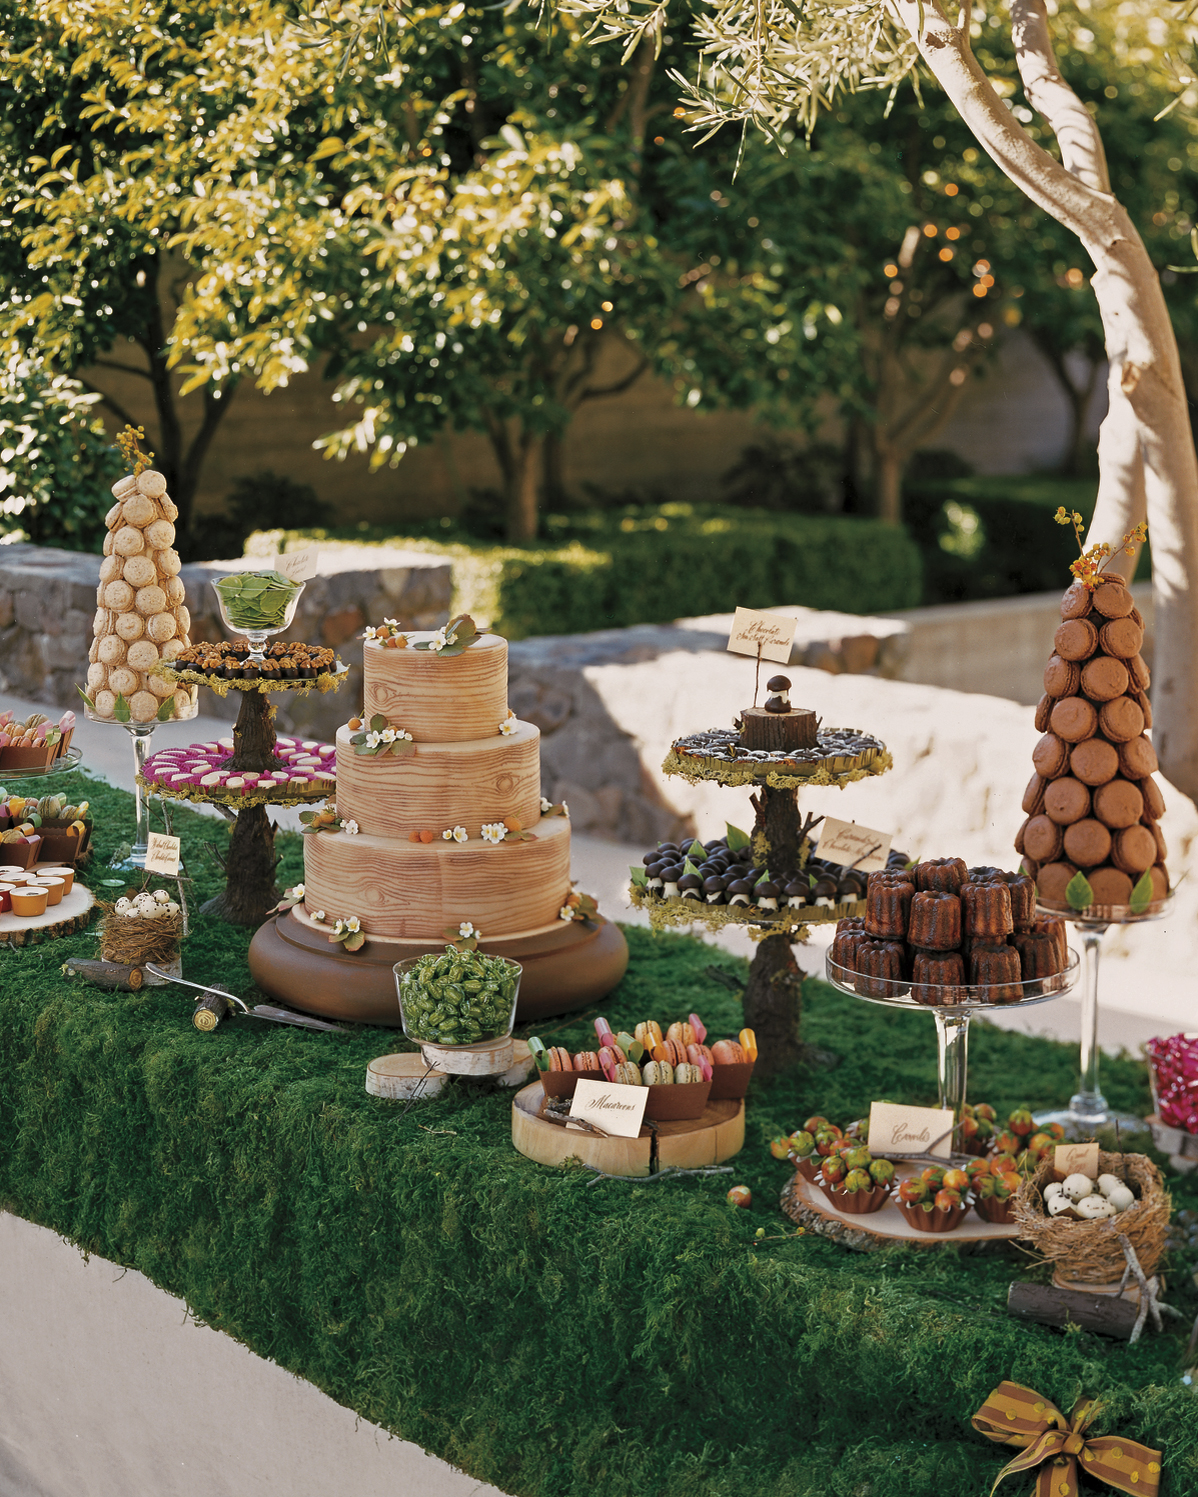 39 Amazing Dessert Tables from Real Weddings